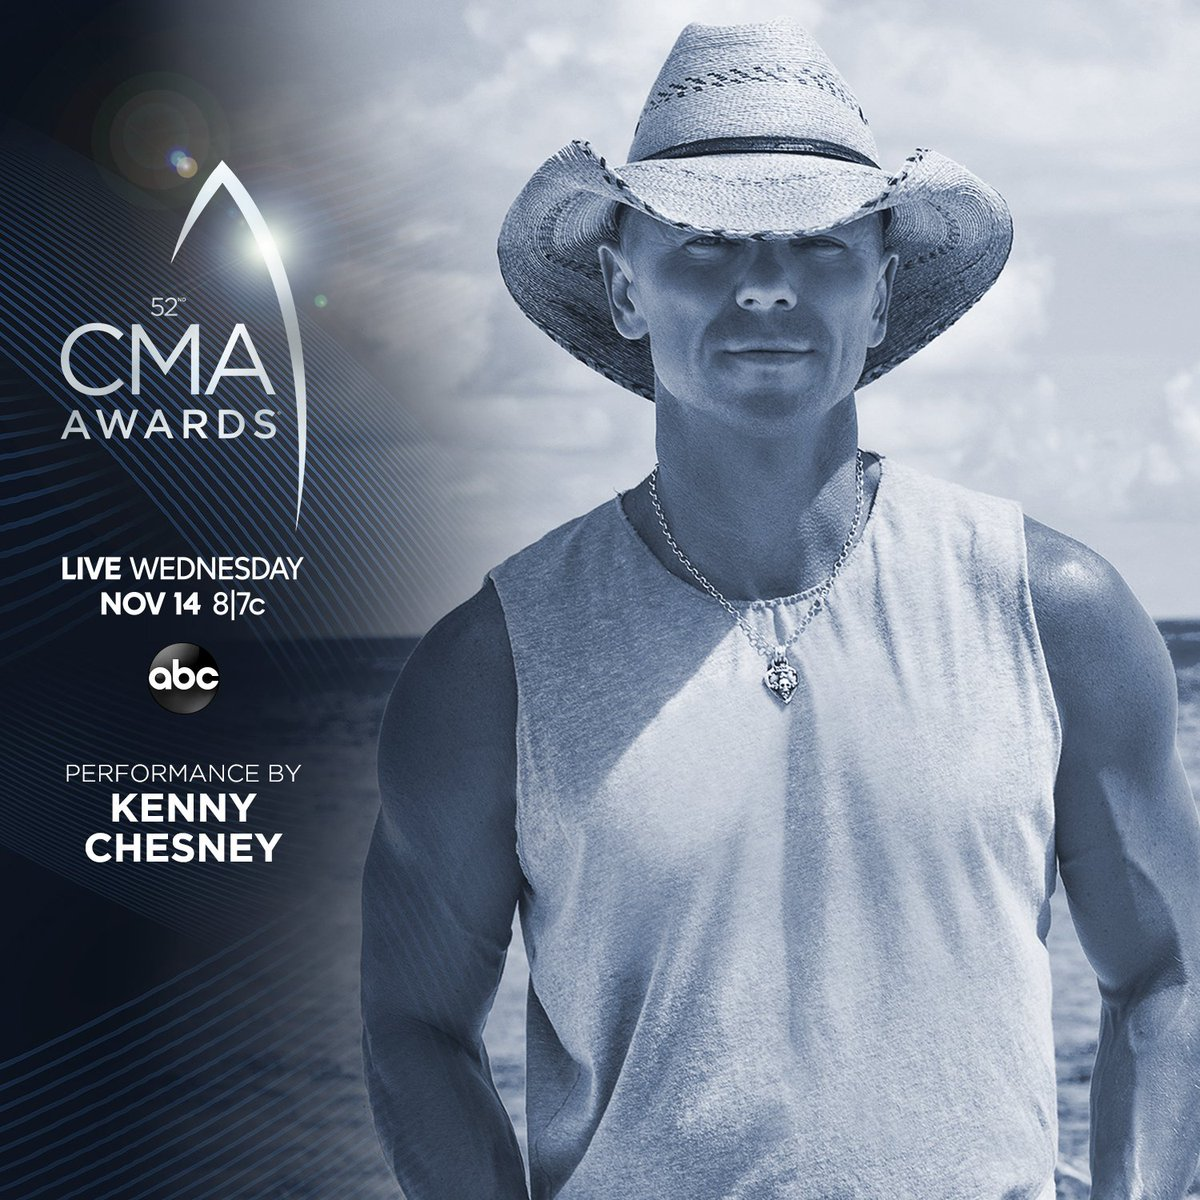 RT @kennychesney: Watch Nov 14 on @ABCNetwork. #CMAawards @CountryMusic https://t.co/79Shn87GRN